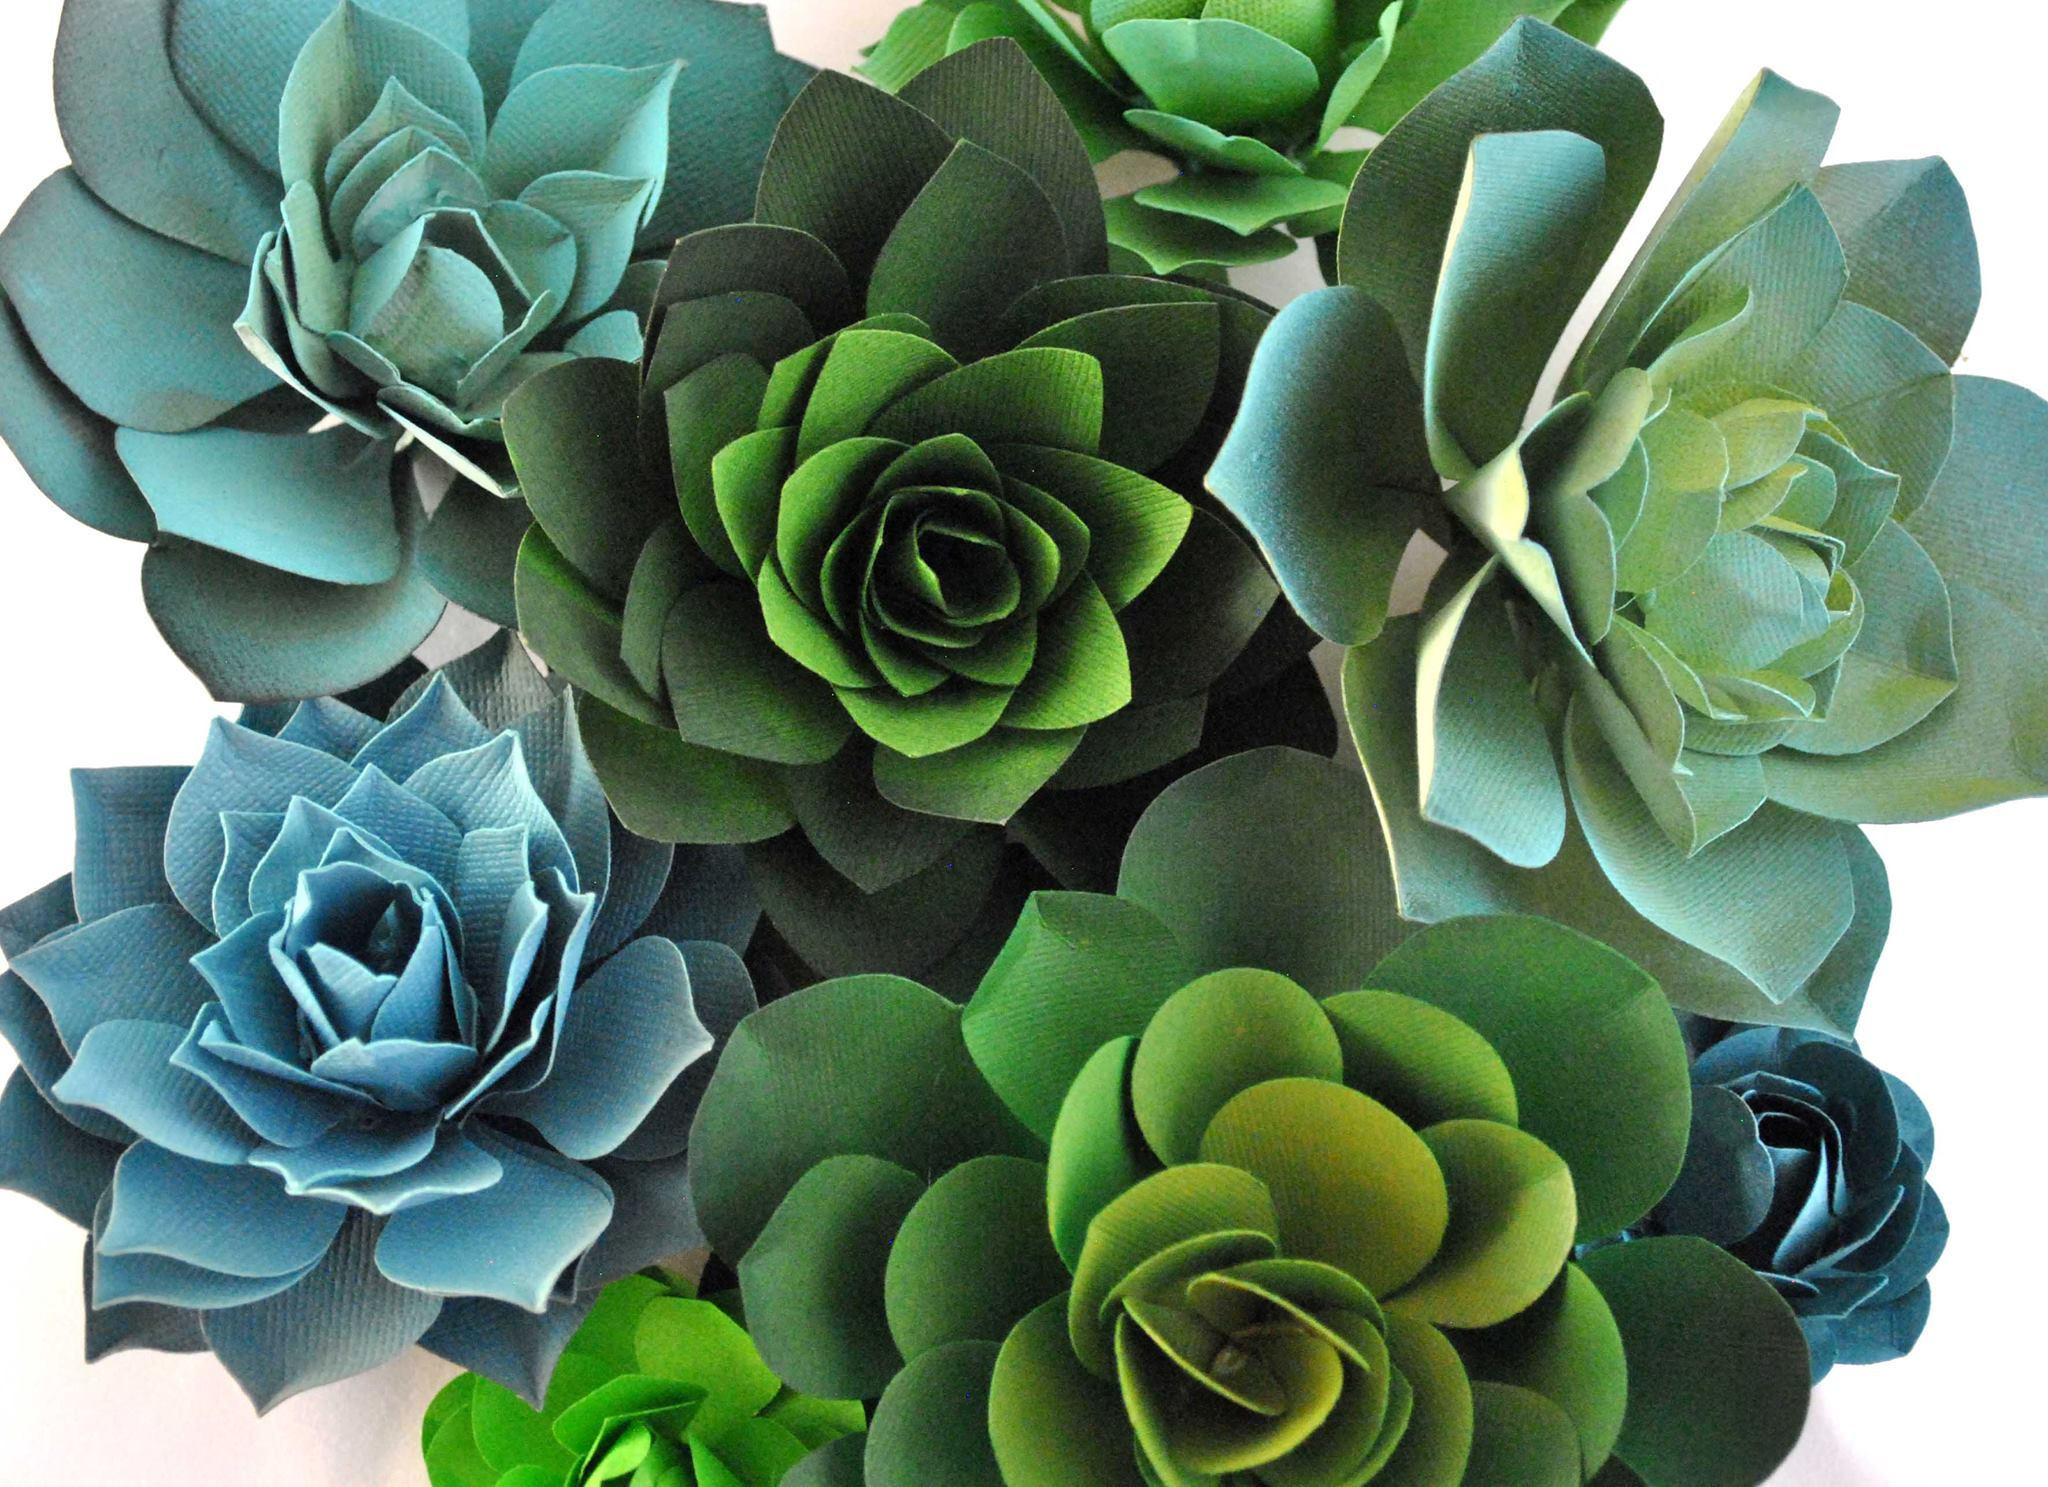 Best gift for her- Succulent plants that will never die! Made out of fine paper by an amazing artist!